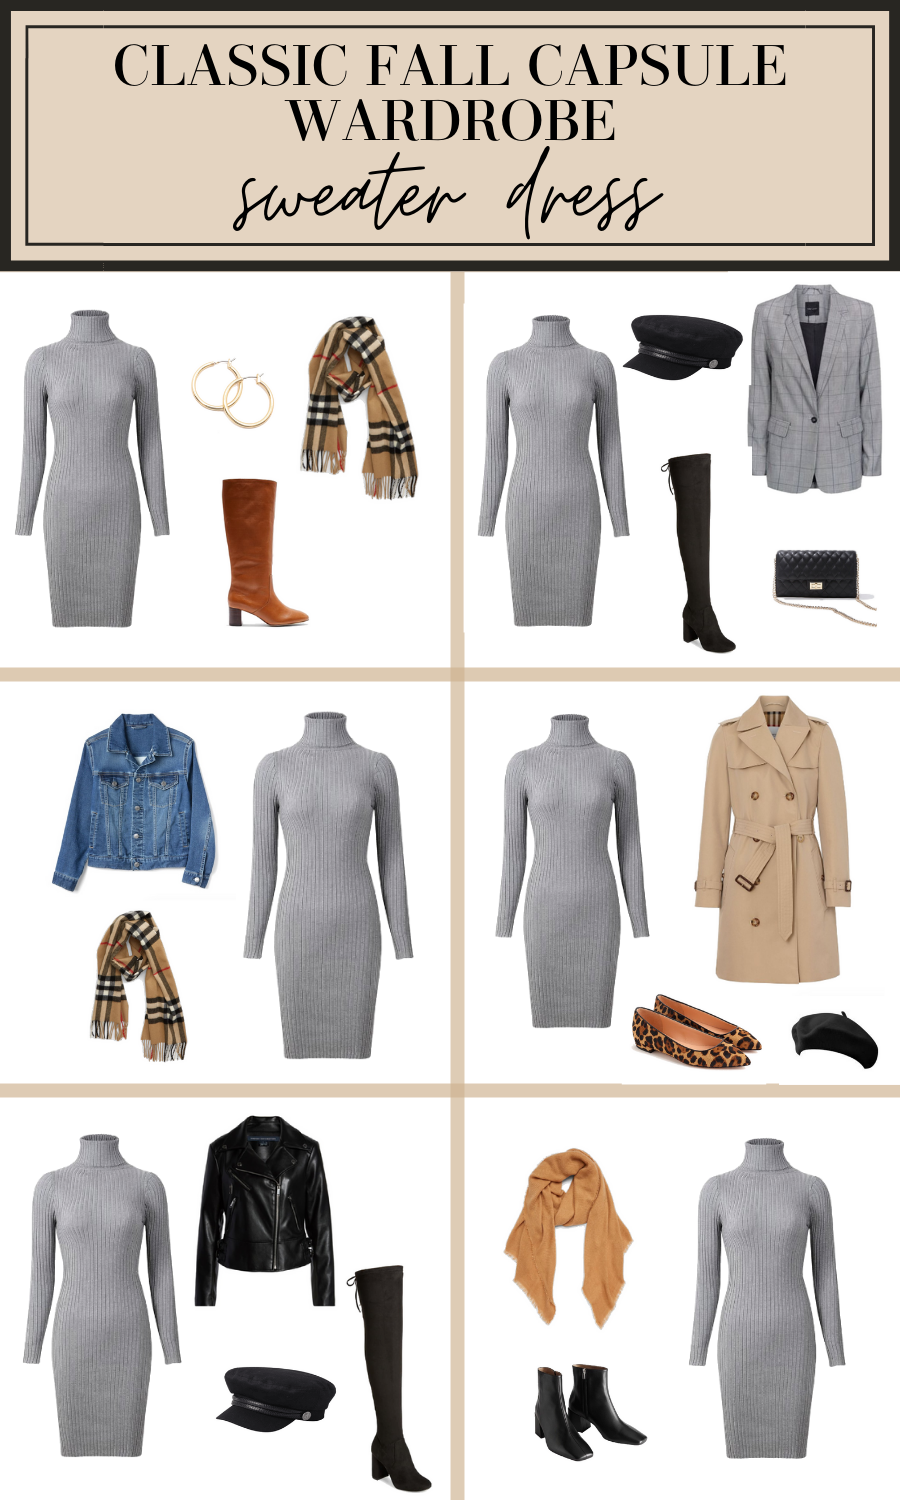 sweater dress outfit ideas for fall